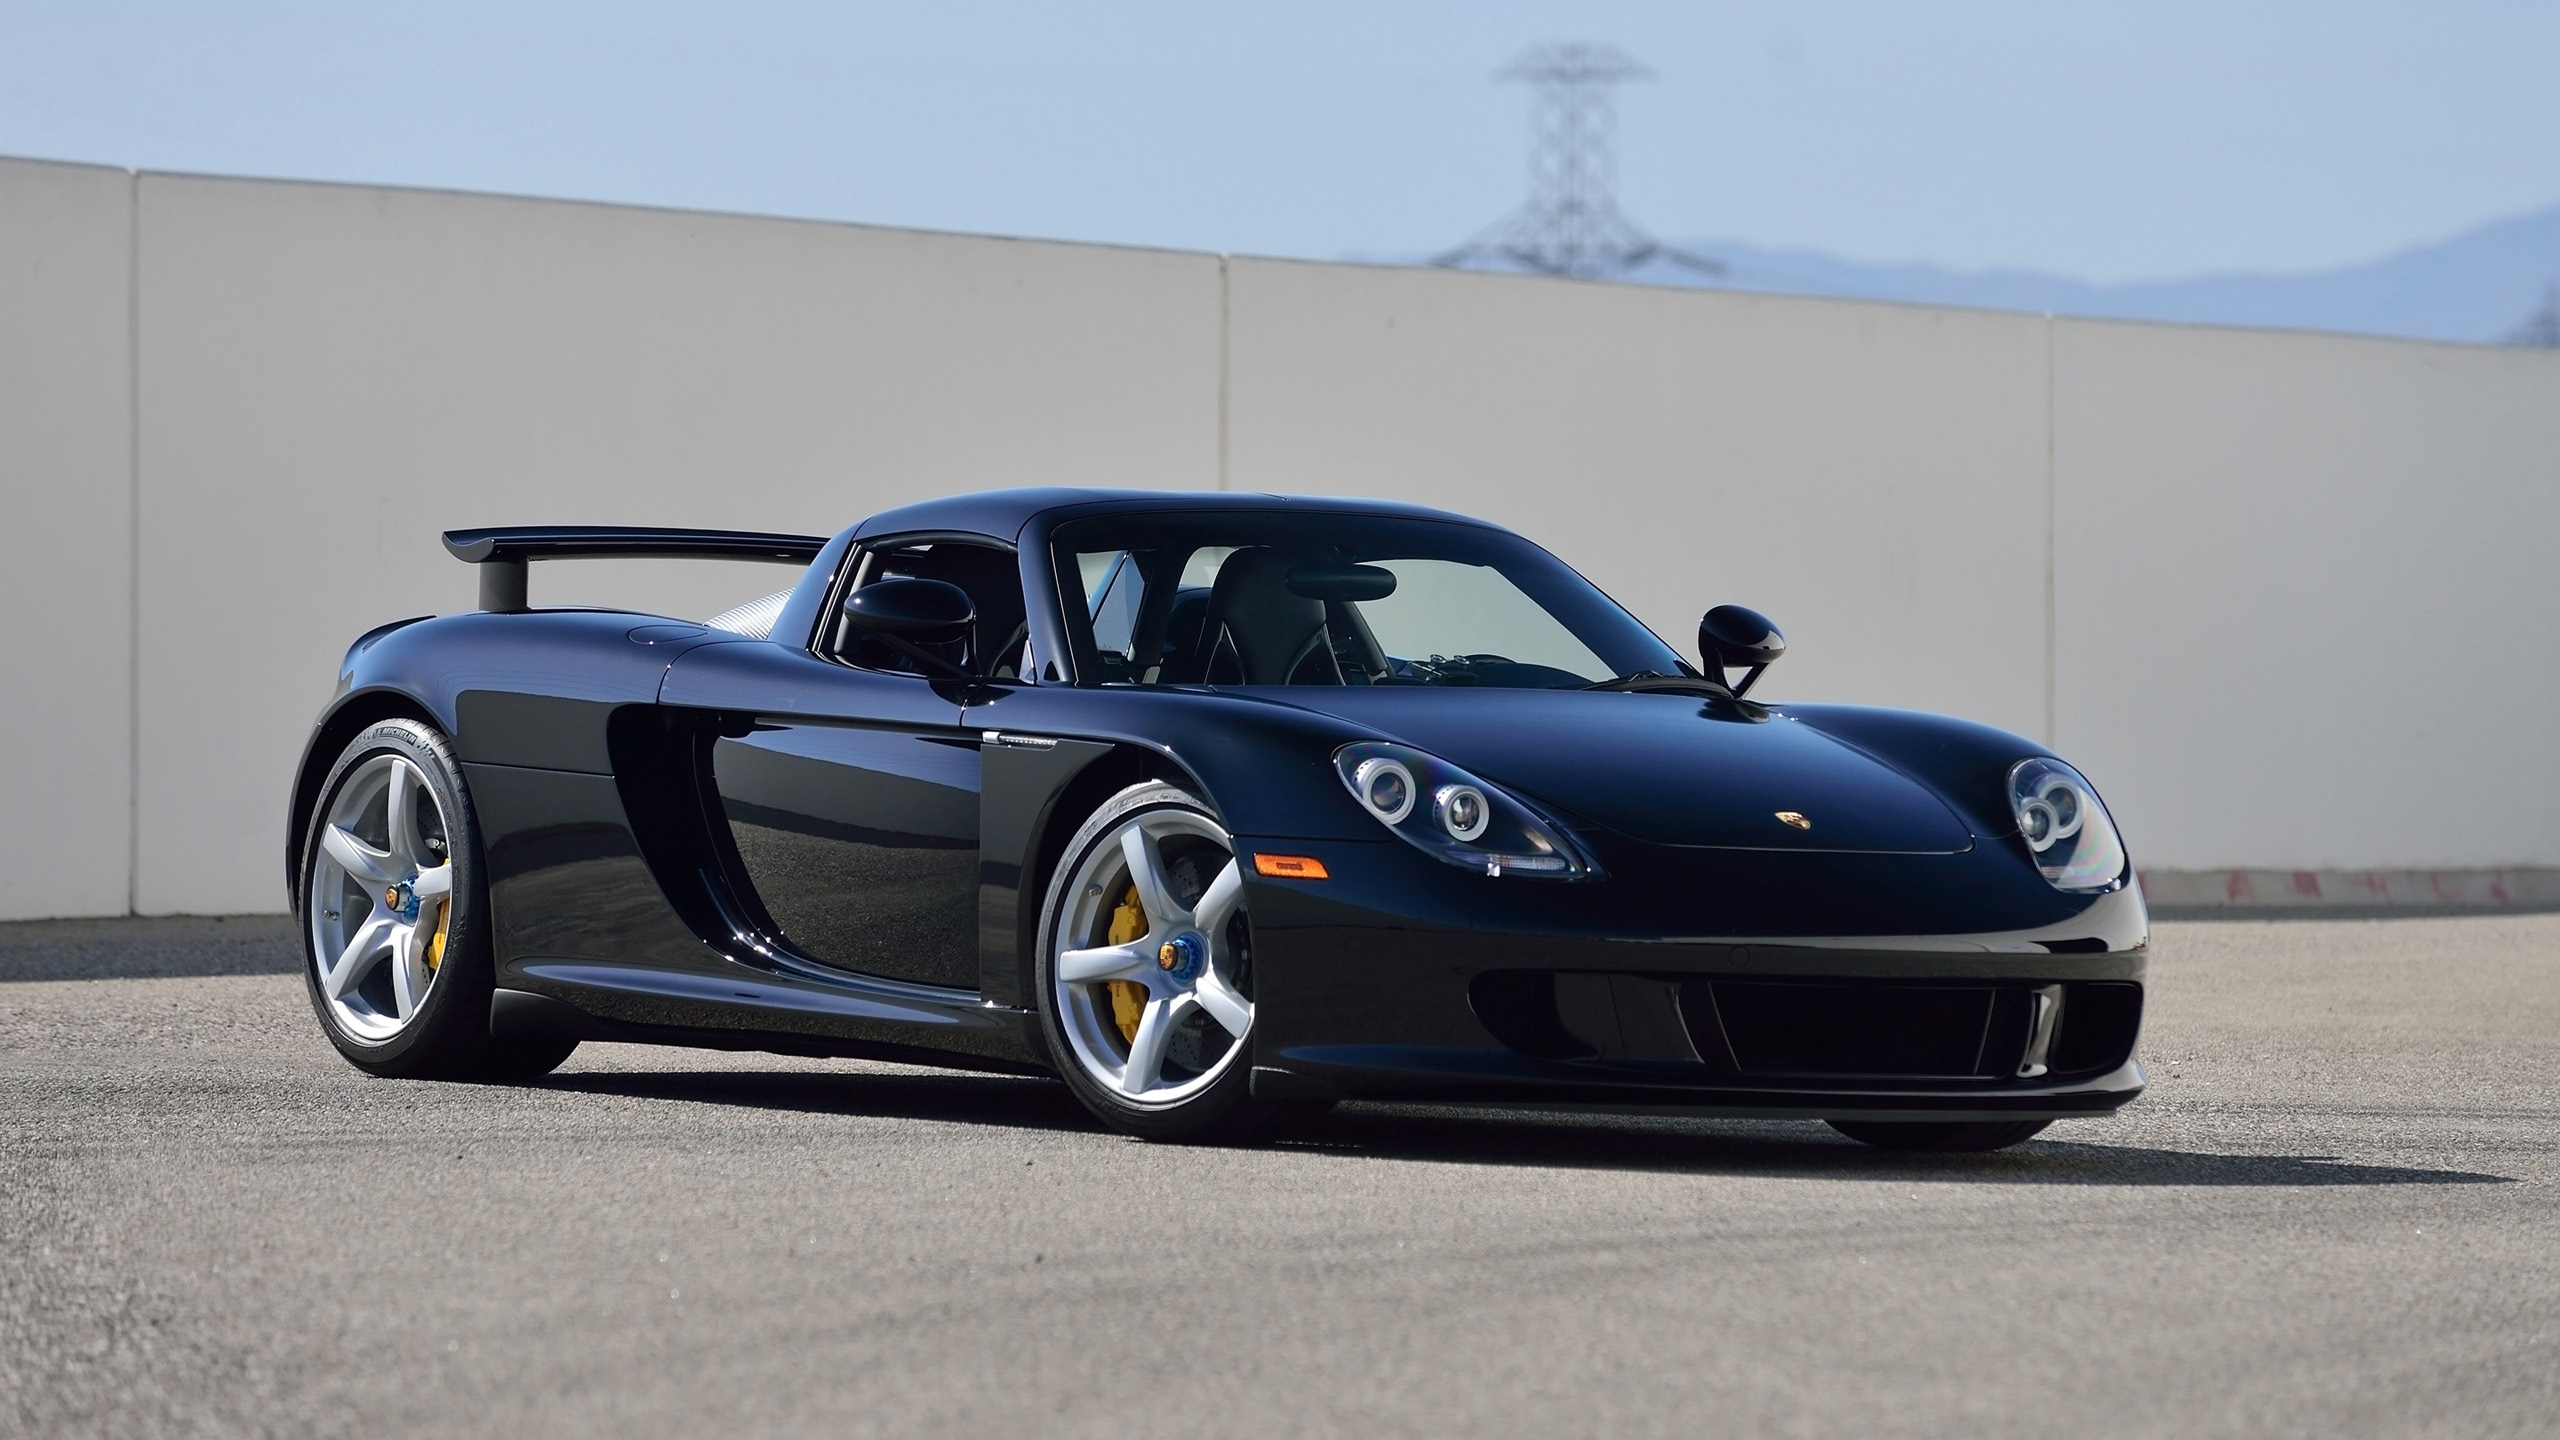 2005 porsche carrera gt basalt wallpaper | hd car wallpapers | id #6877